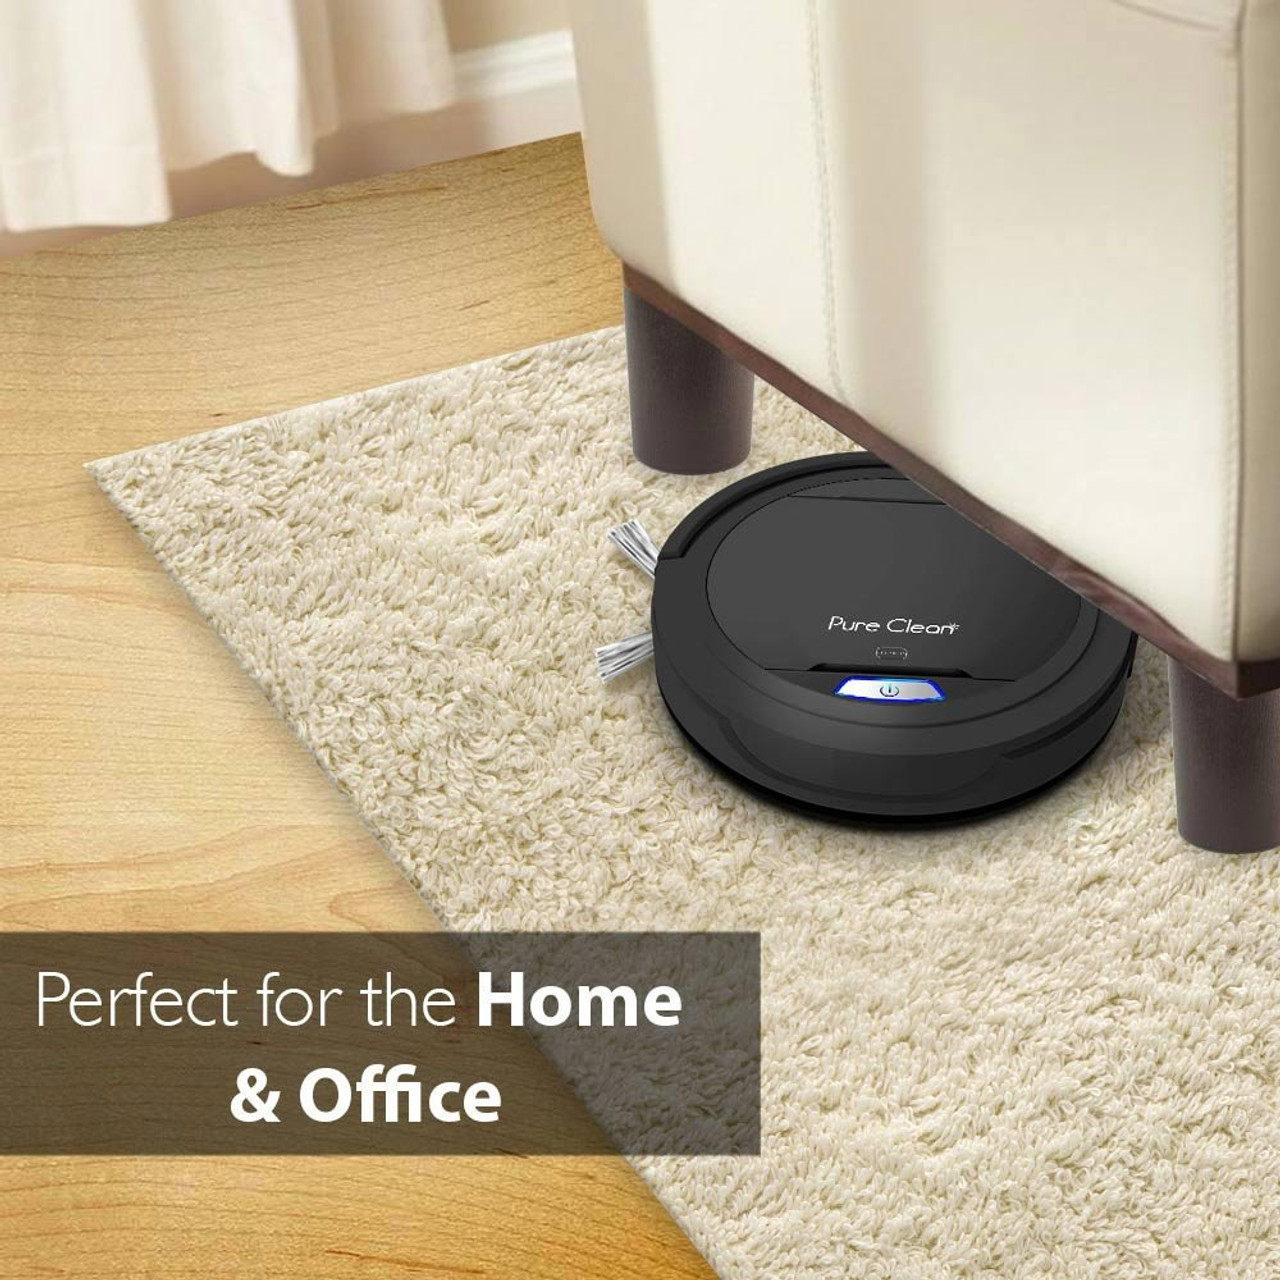 Pure Clean PUCRC26B Smart Vacuum Cleaner - Automatic Robot Cleaning Vacuum